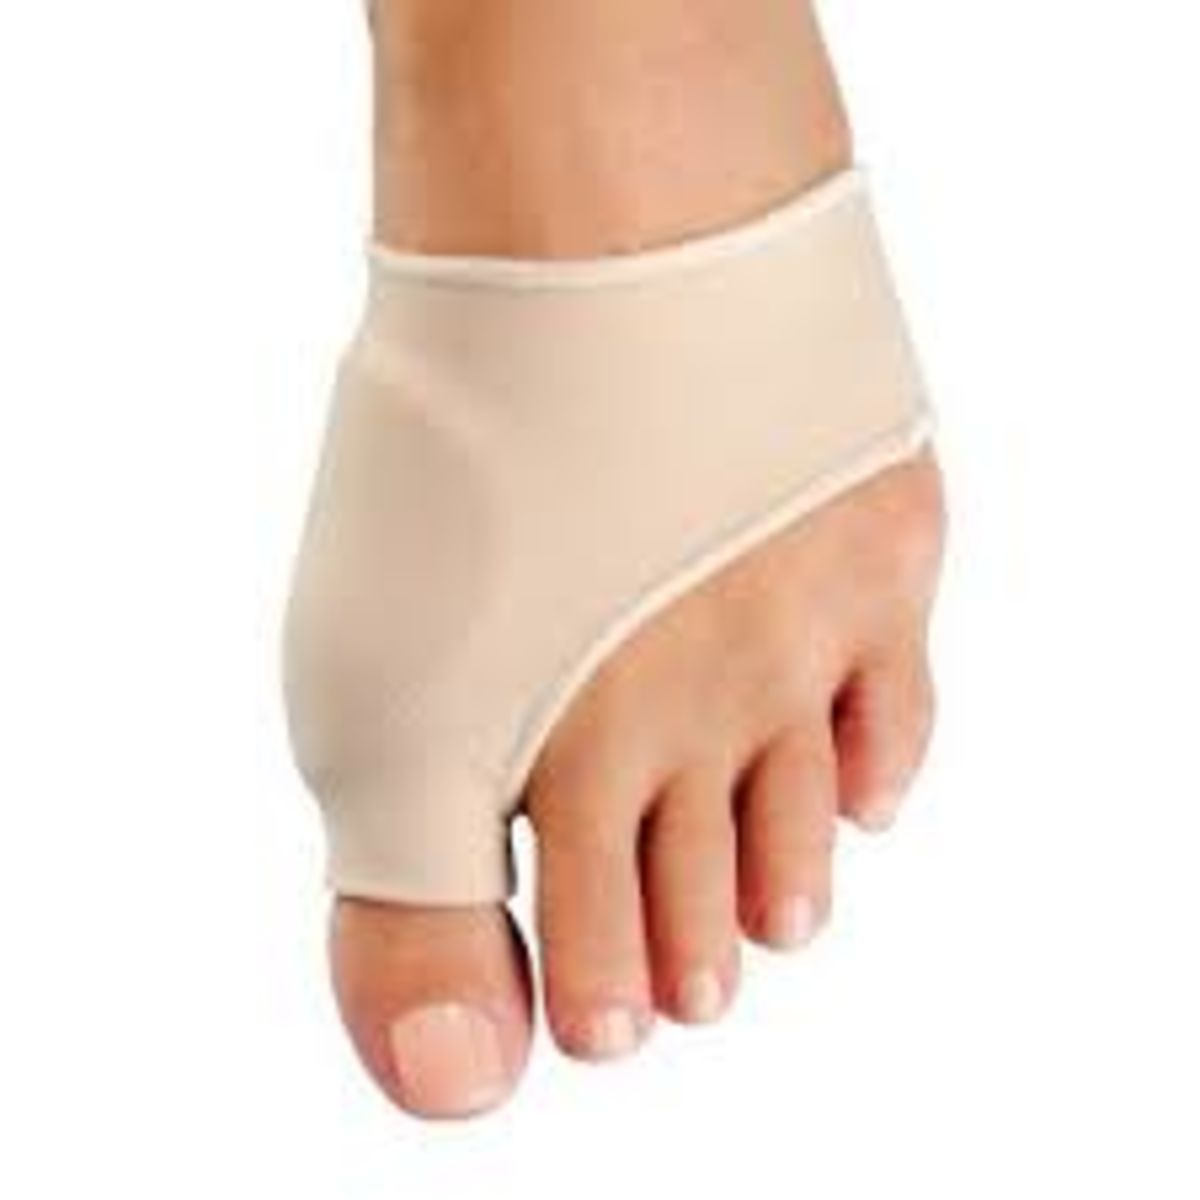 Headline for 5 WaysTo Relieve Bunion Pain - No Surgery!